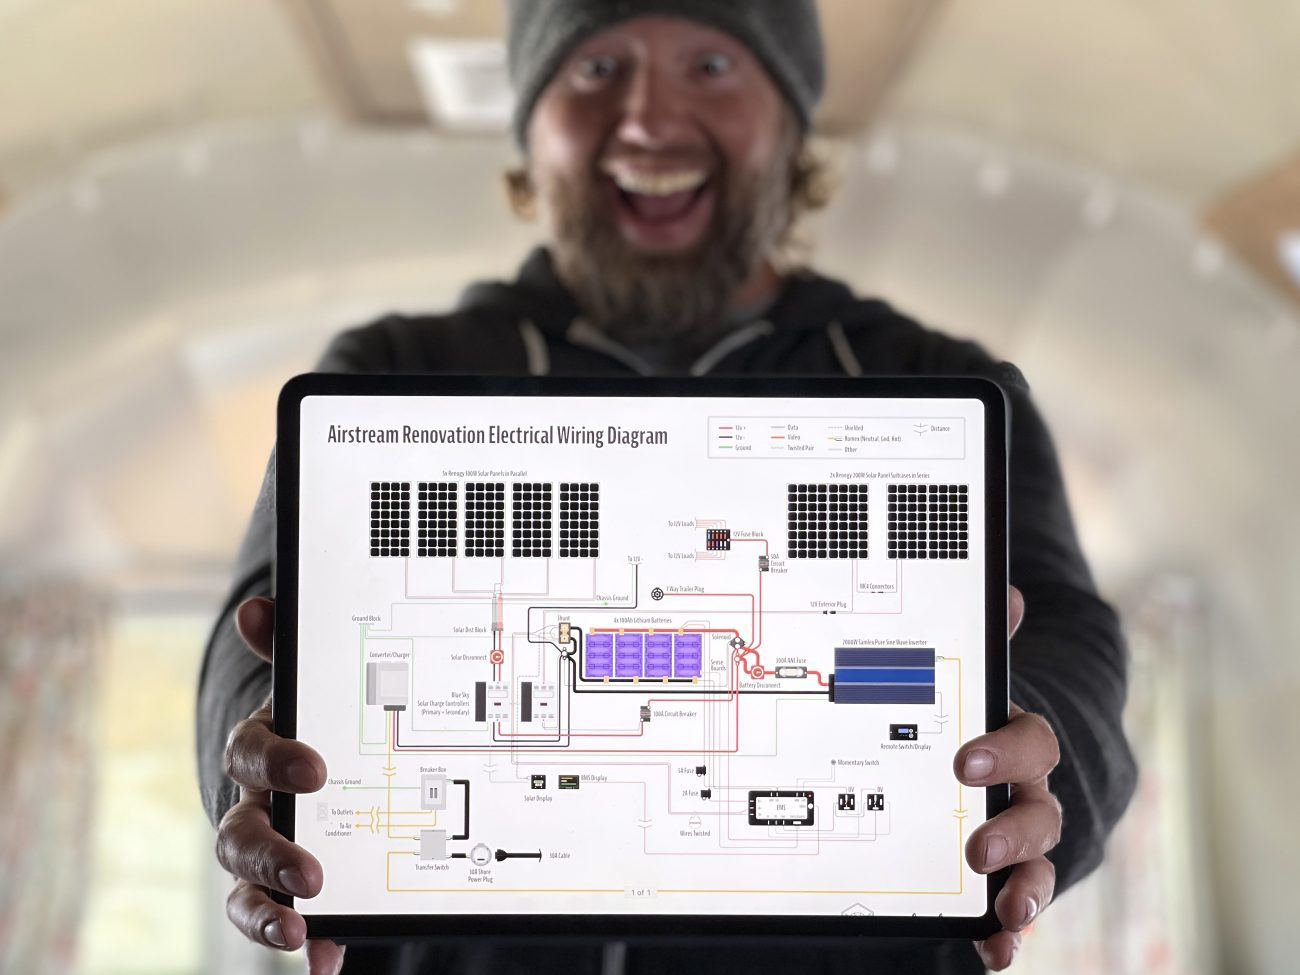 Man holding Airstream renovation electrical wiring diagram on an iPad